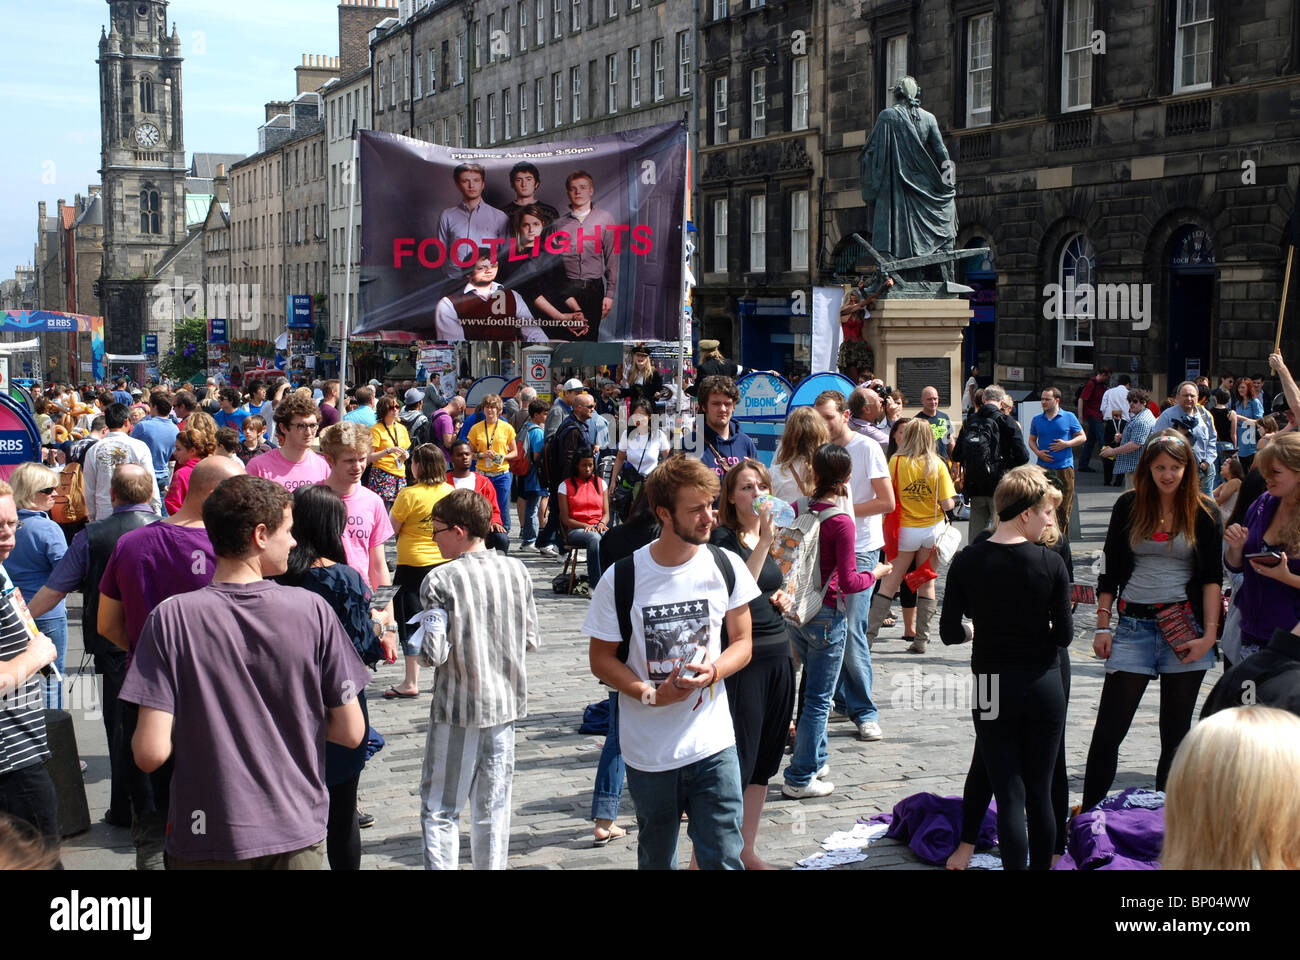 Performers from the Edinburgh Fringe Festival promote their shows on the Royal Mile in Edinburgh, Scotland, UK. - Stock Image